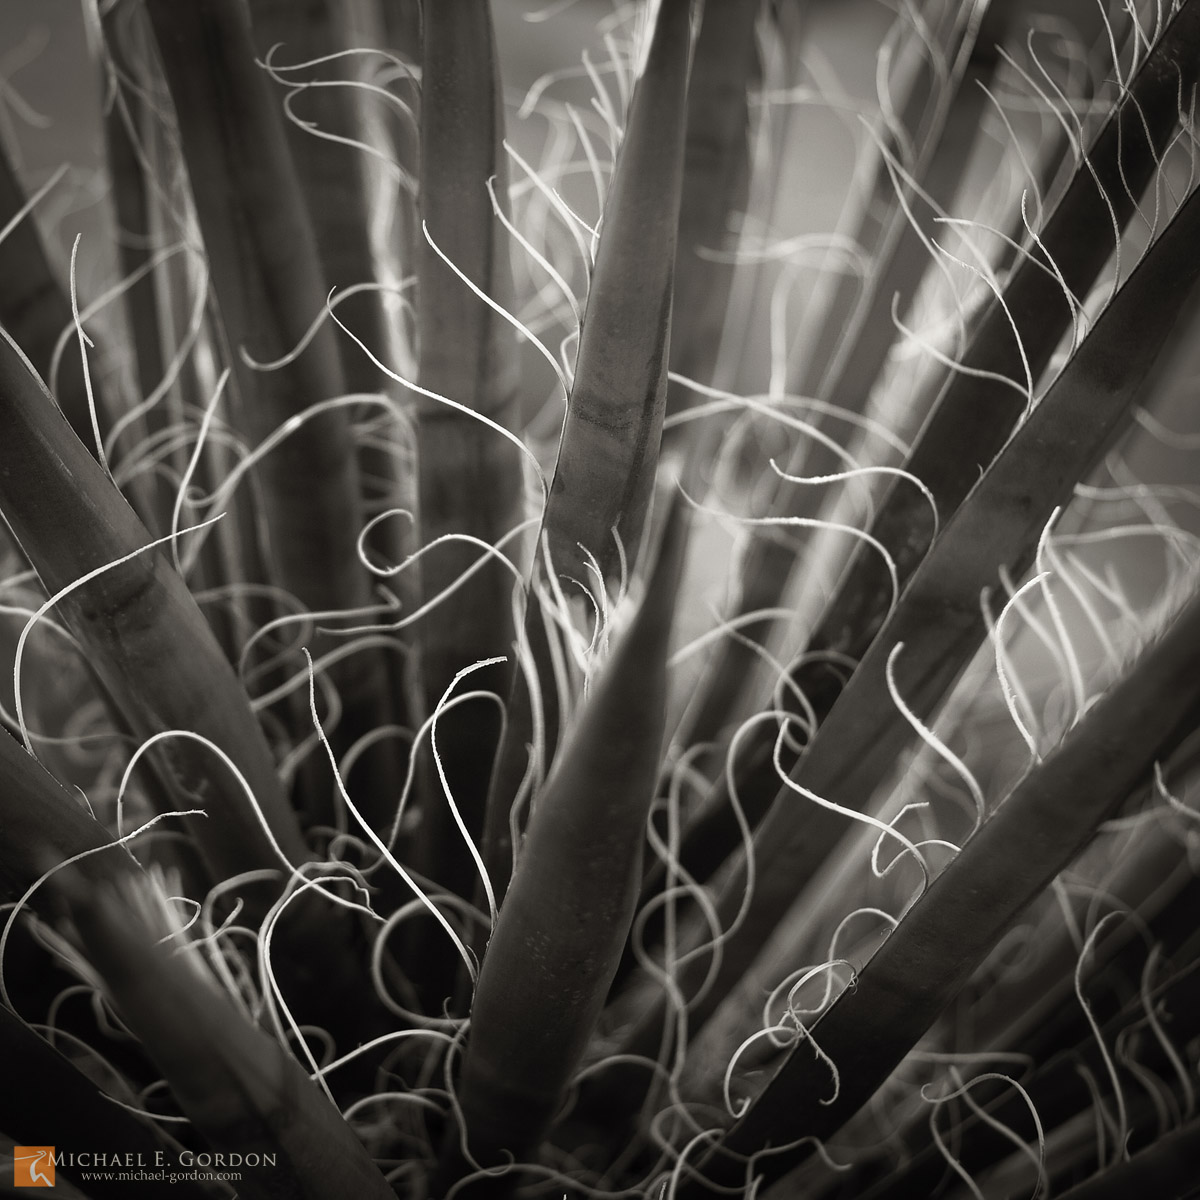 photo,picture,b/w,black and white,Mojave Yucca,Yucca schidigera,close up,abstract,shallow focus,square, soft,Joshua Tree National Park,backlight,backlit,fine art, photo